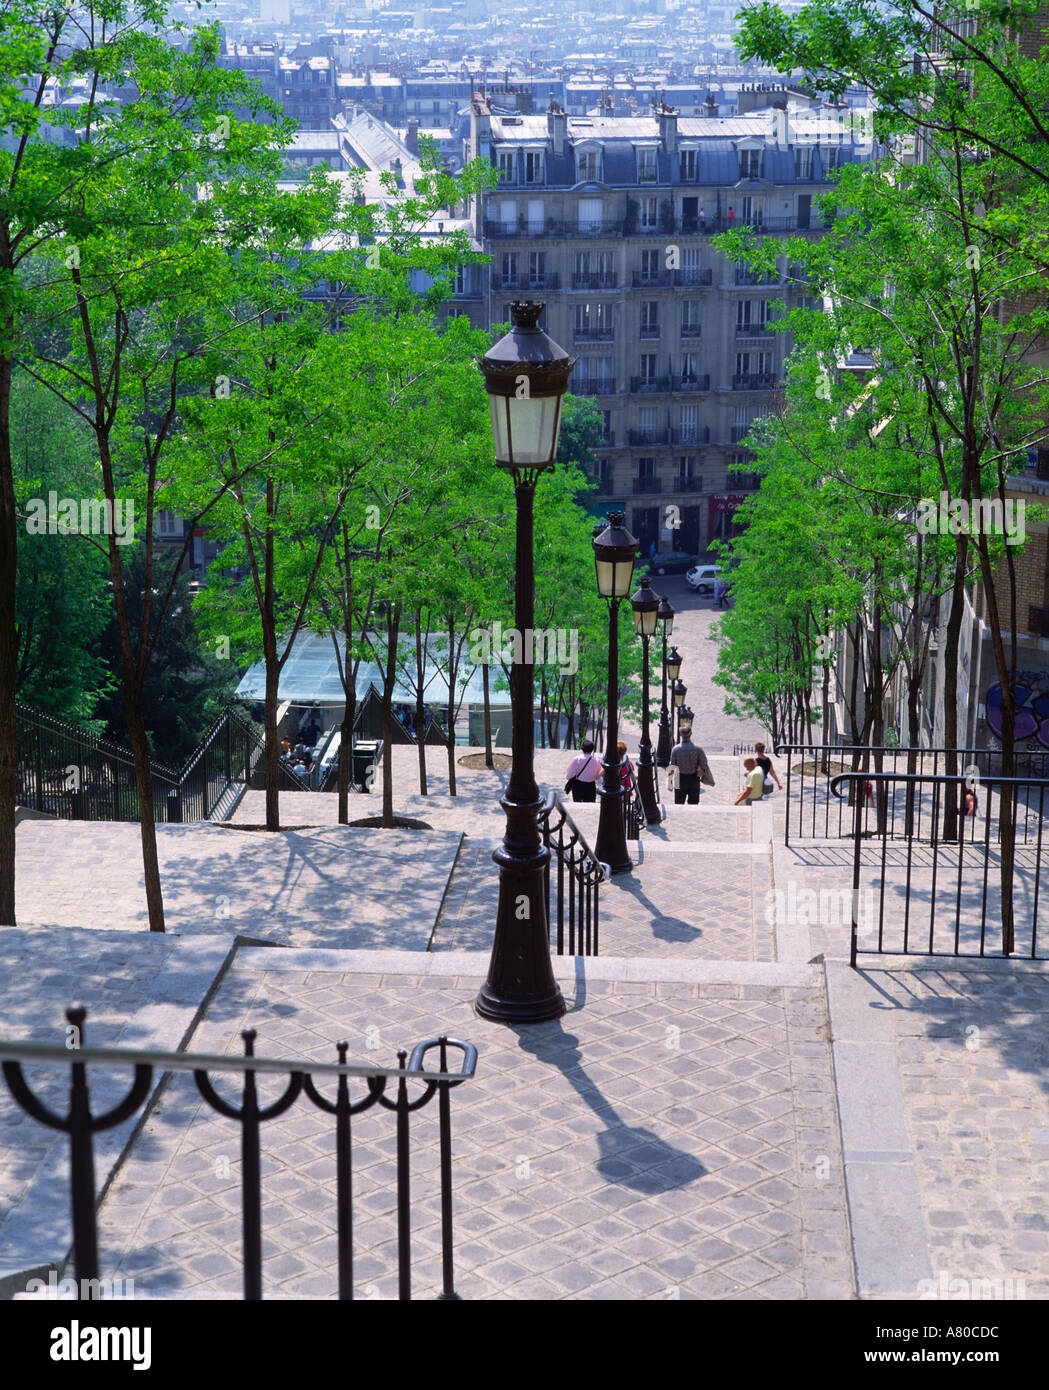 les escaliers de la butte montmartre paris france stock photo royalty free image 527580 alamy. Black Bedroom Furniture Sets. Home Design Ideas